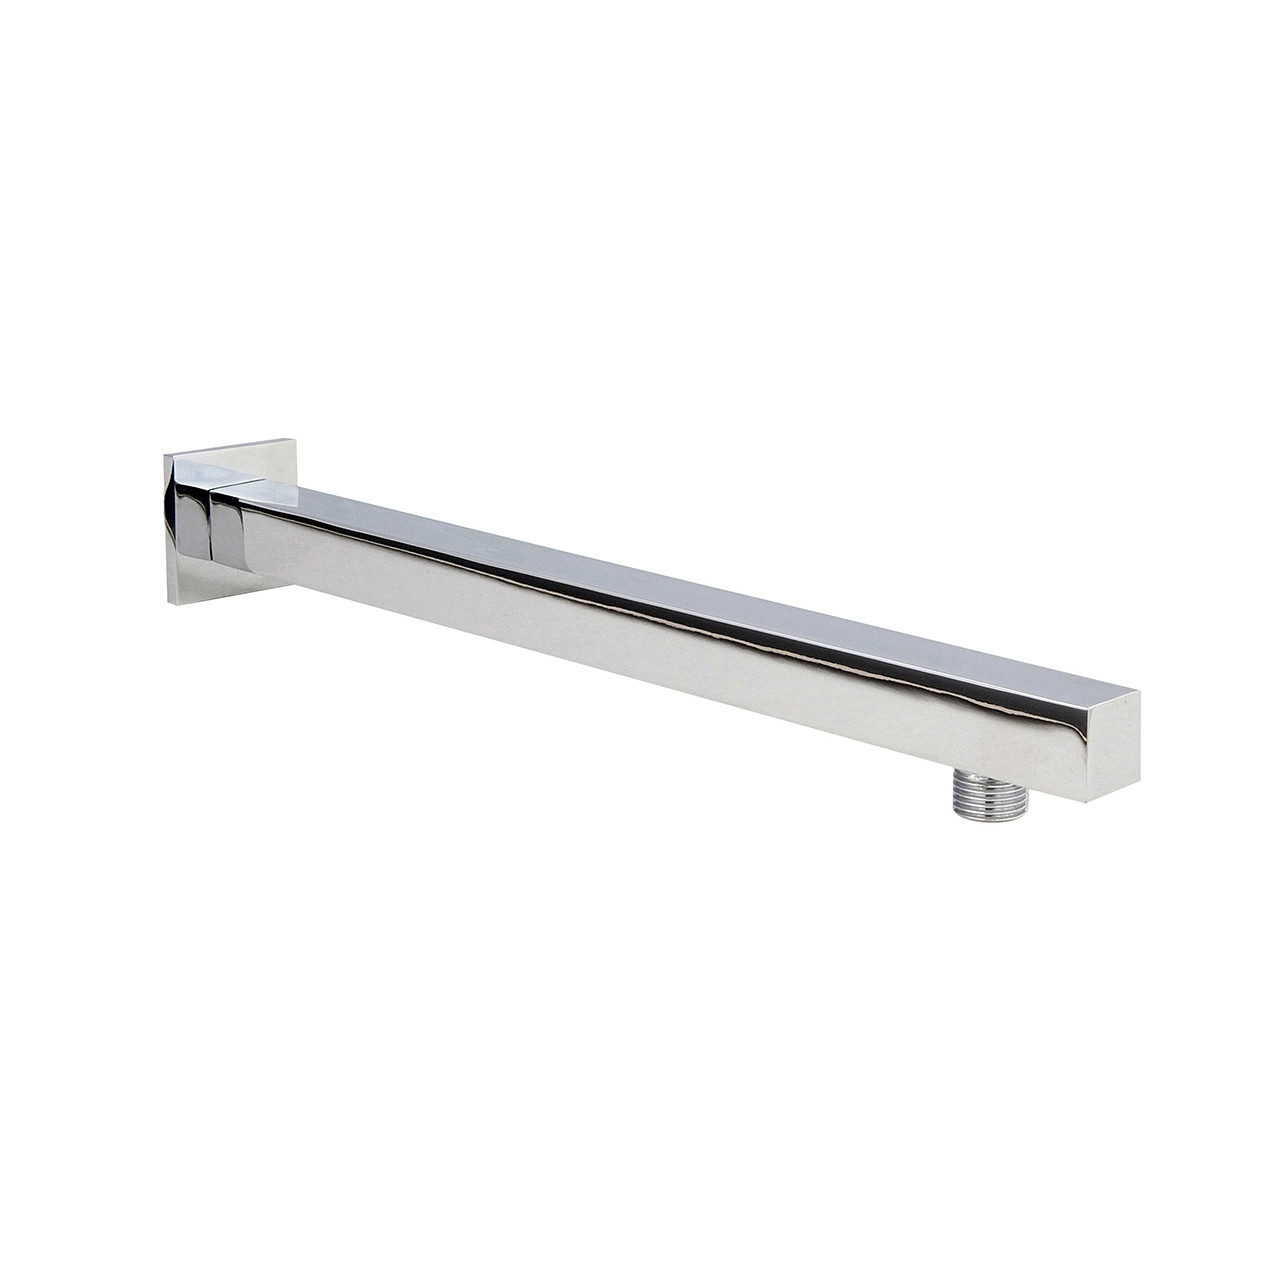 Ultra Square Shower Arm 350mm - ARM19